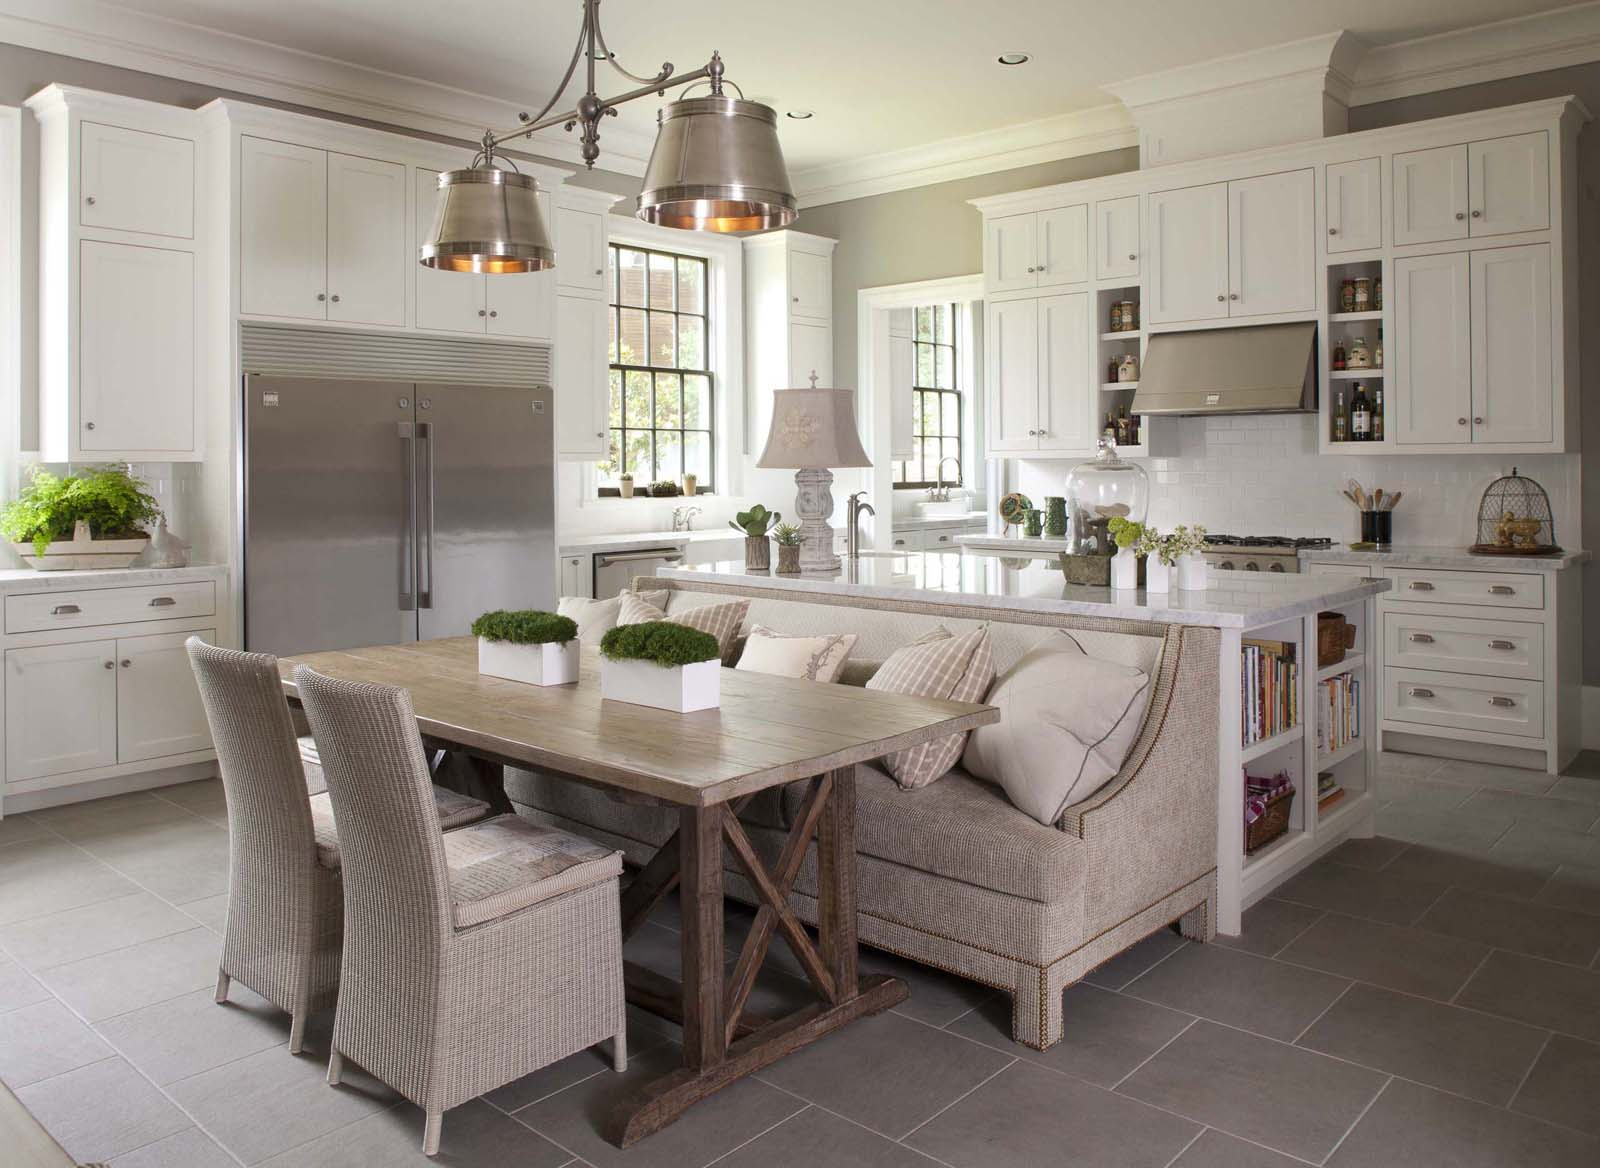 Elegant Simplicity of Classic Contemporary White Kitchen